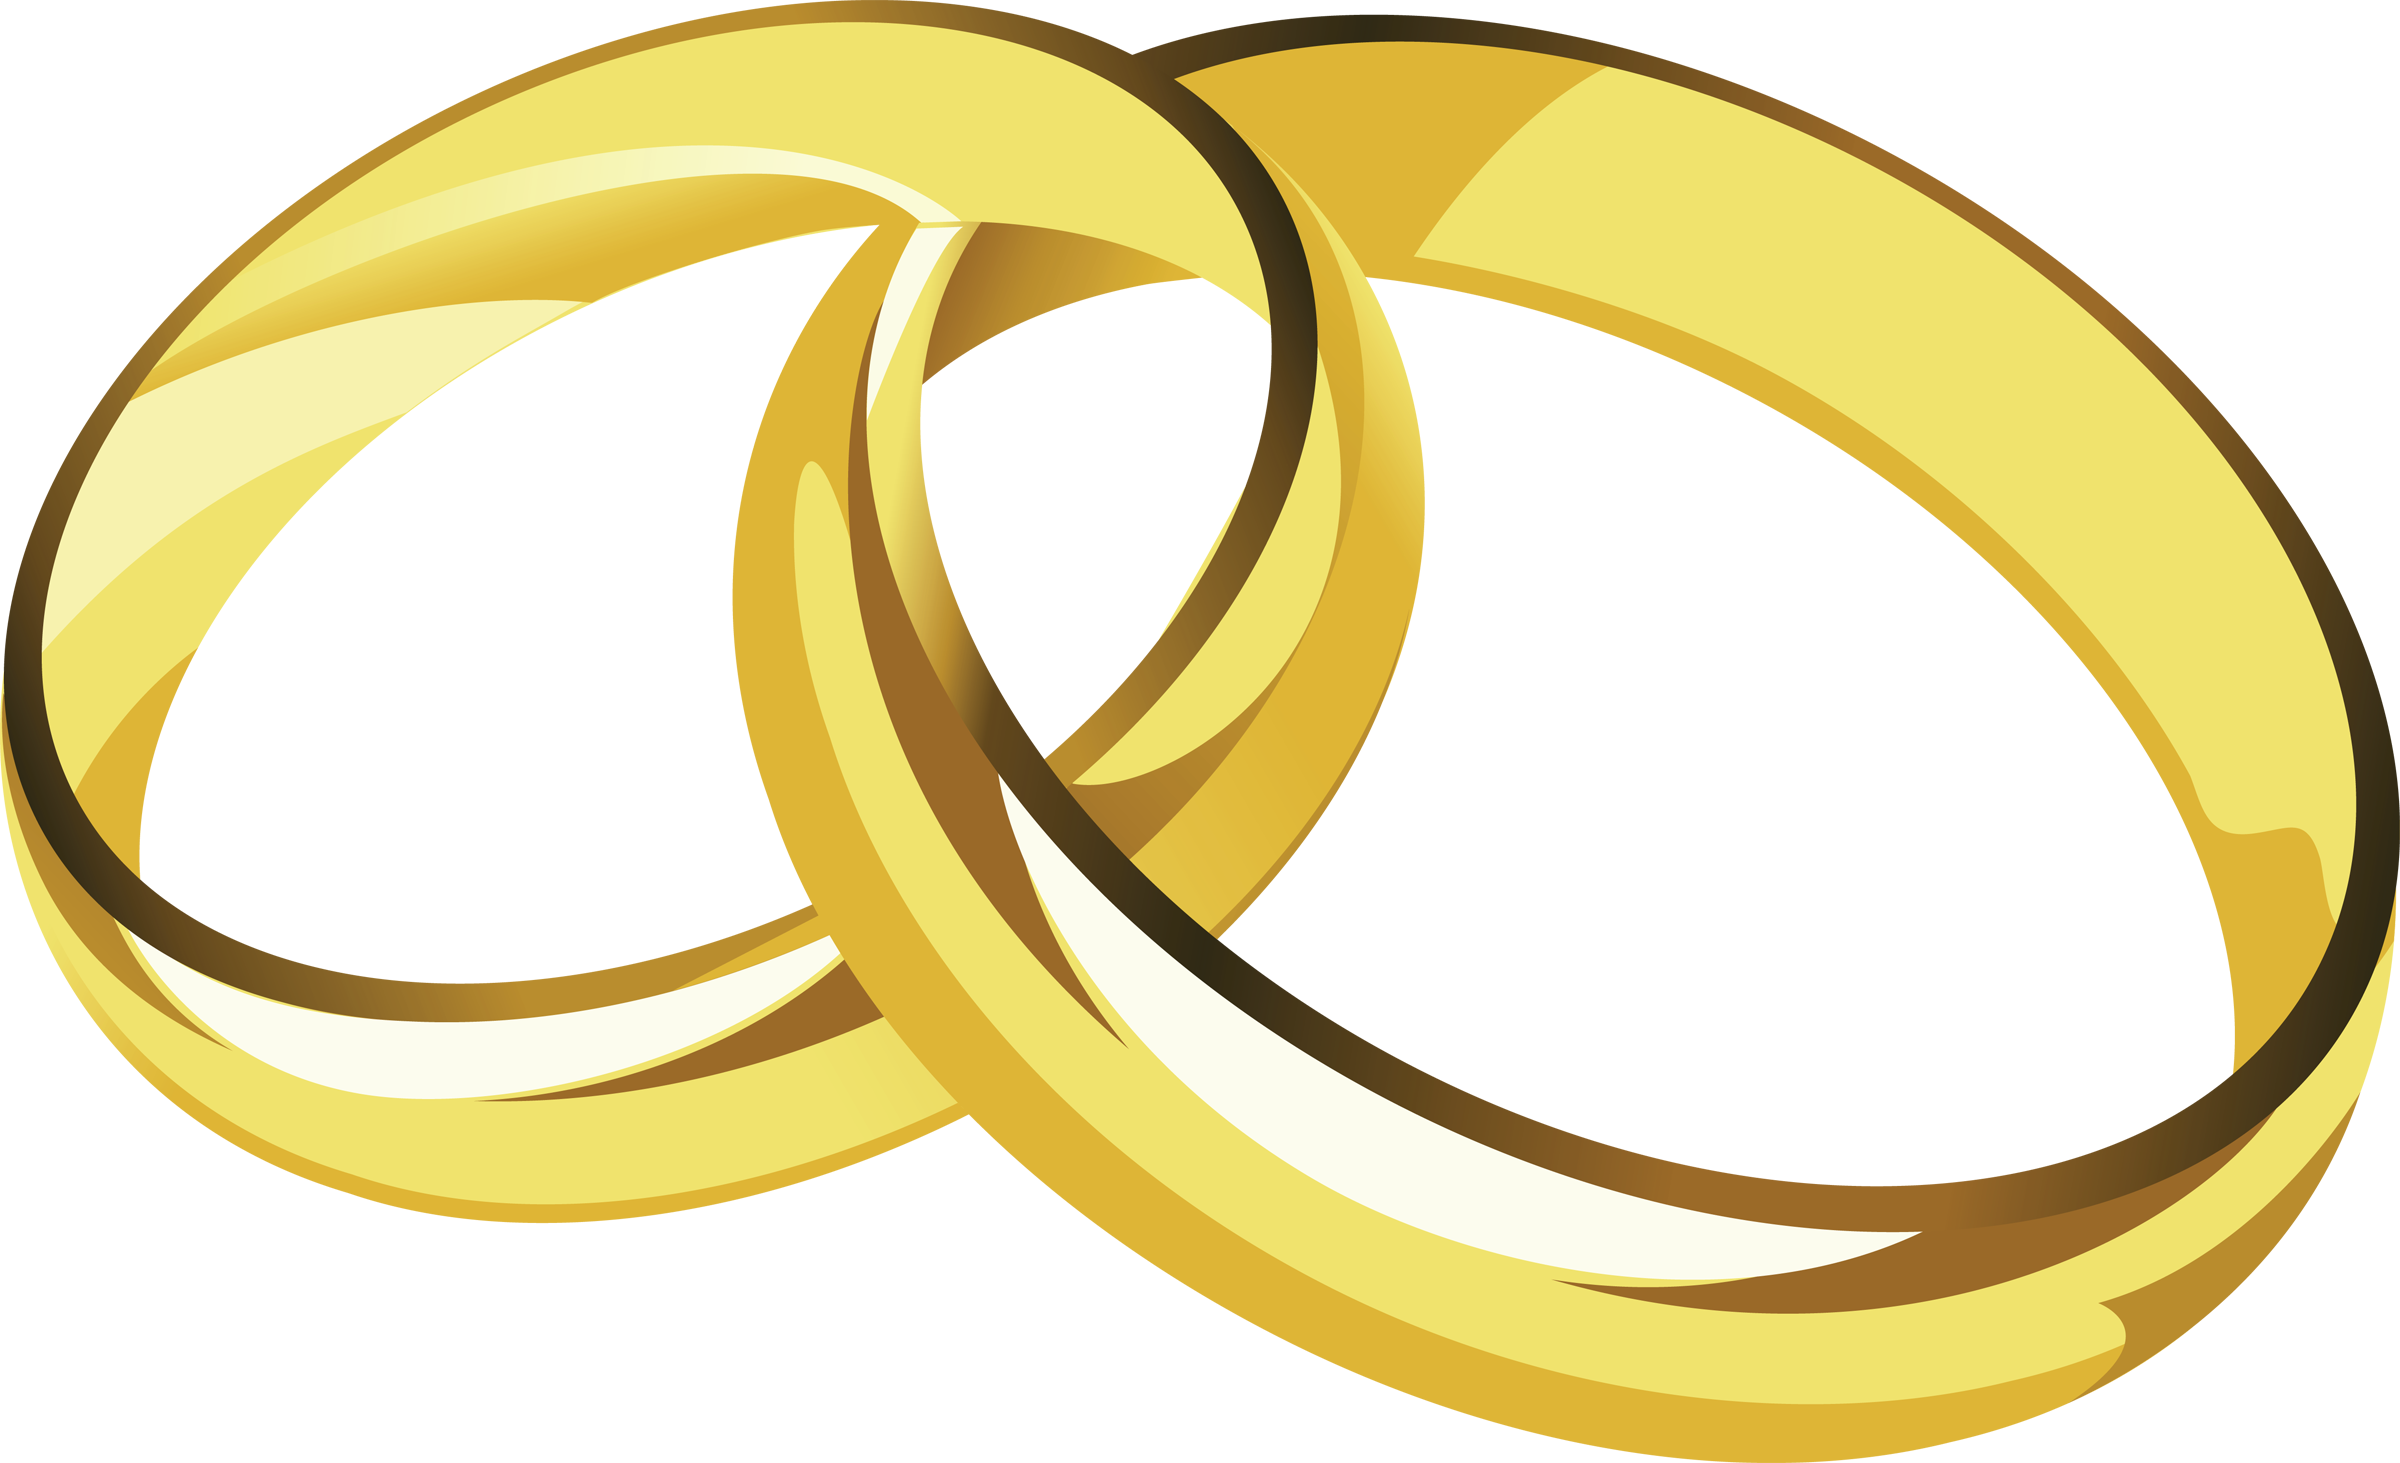 wedding rings clipart - photo #1